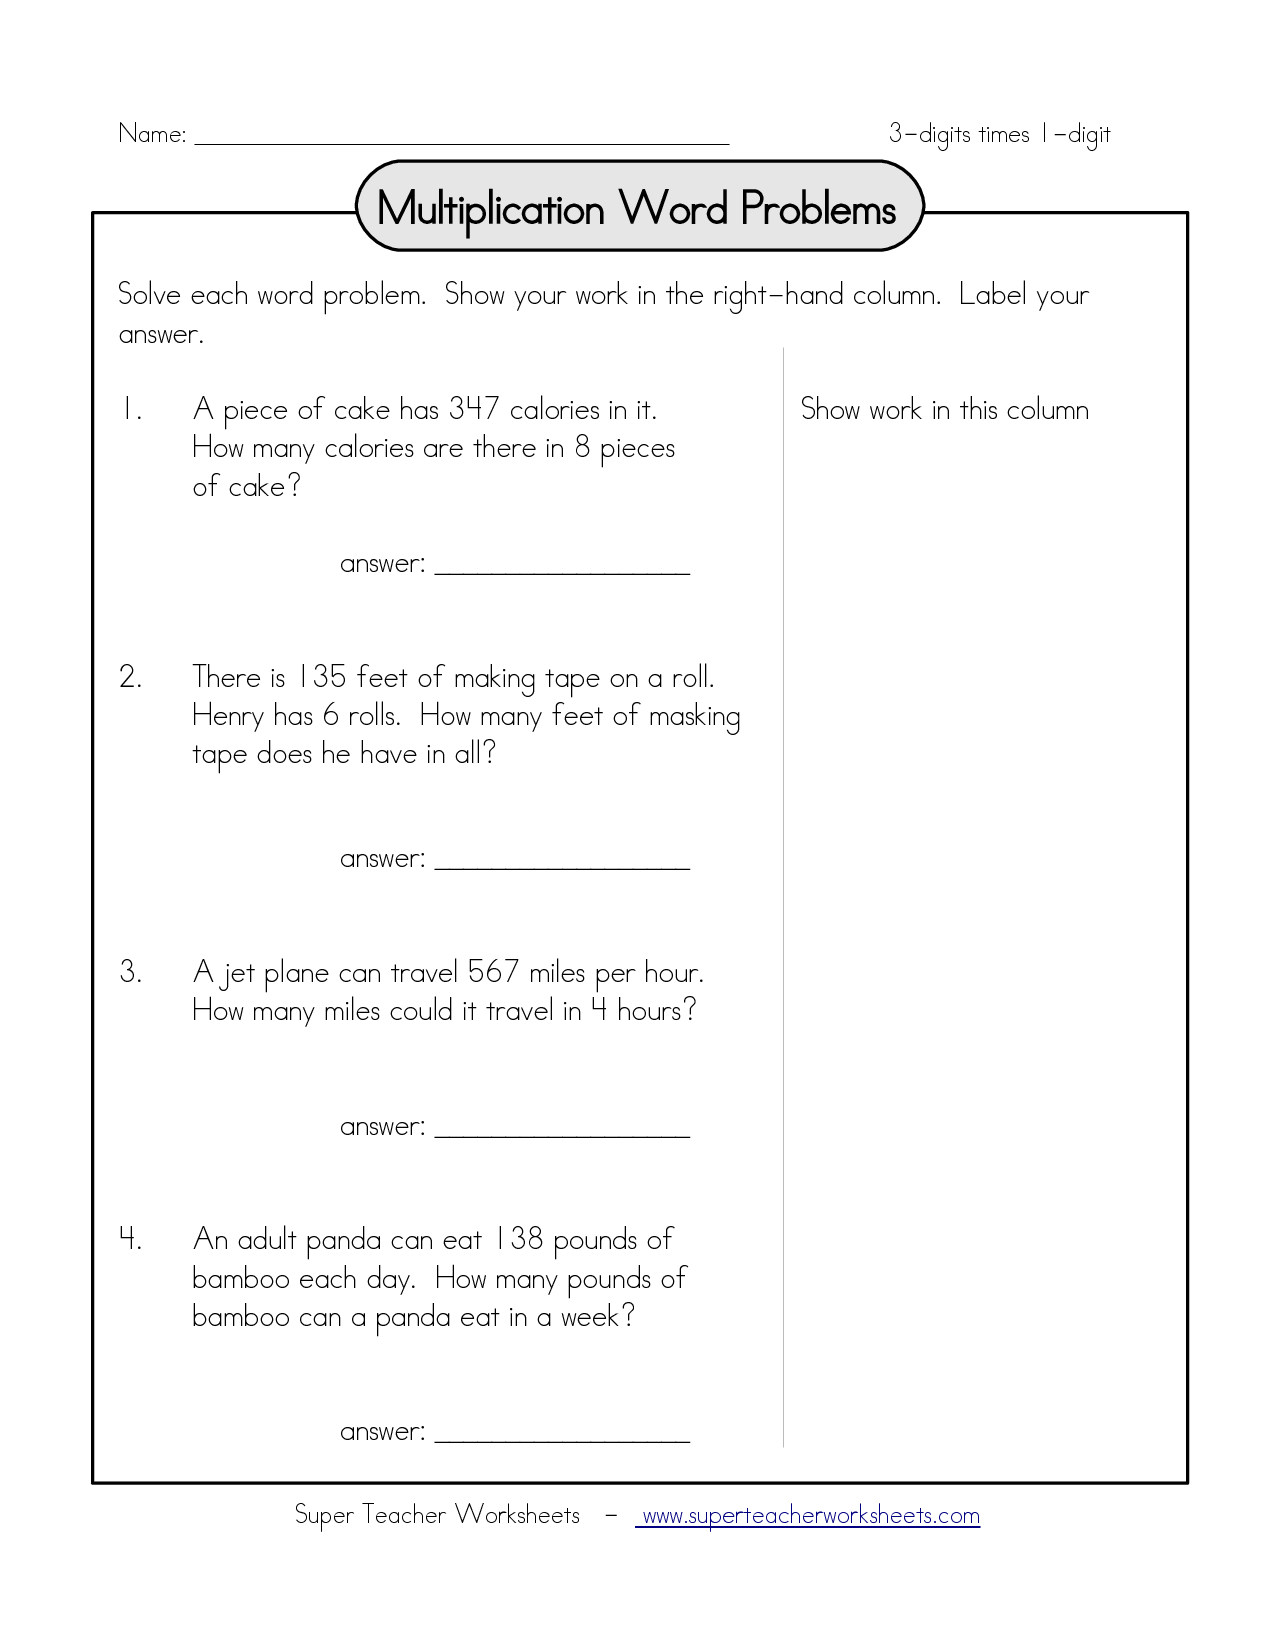 Multiplication Word Problems Name 3 Digits